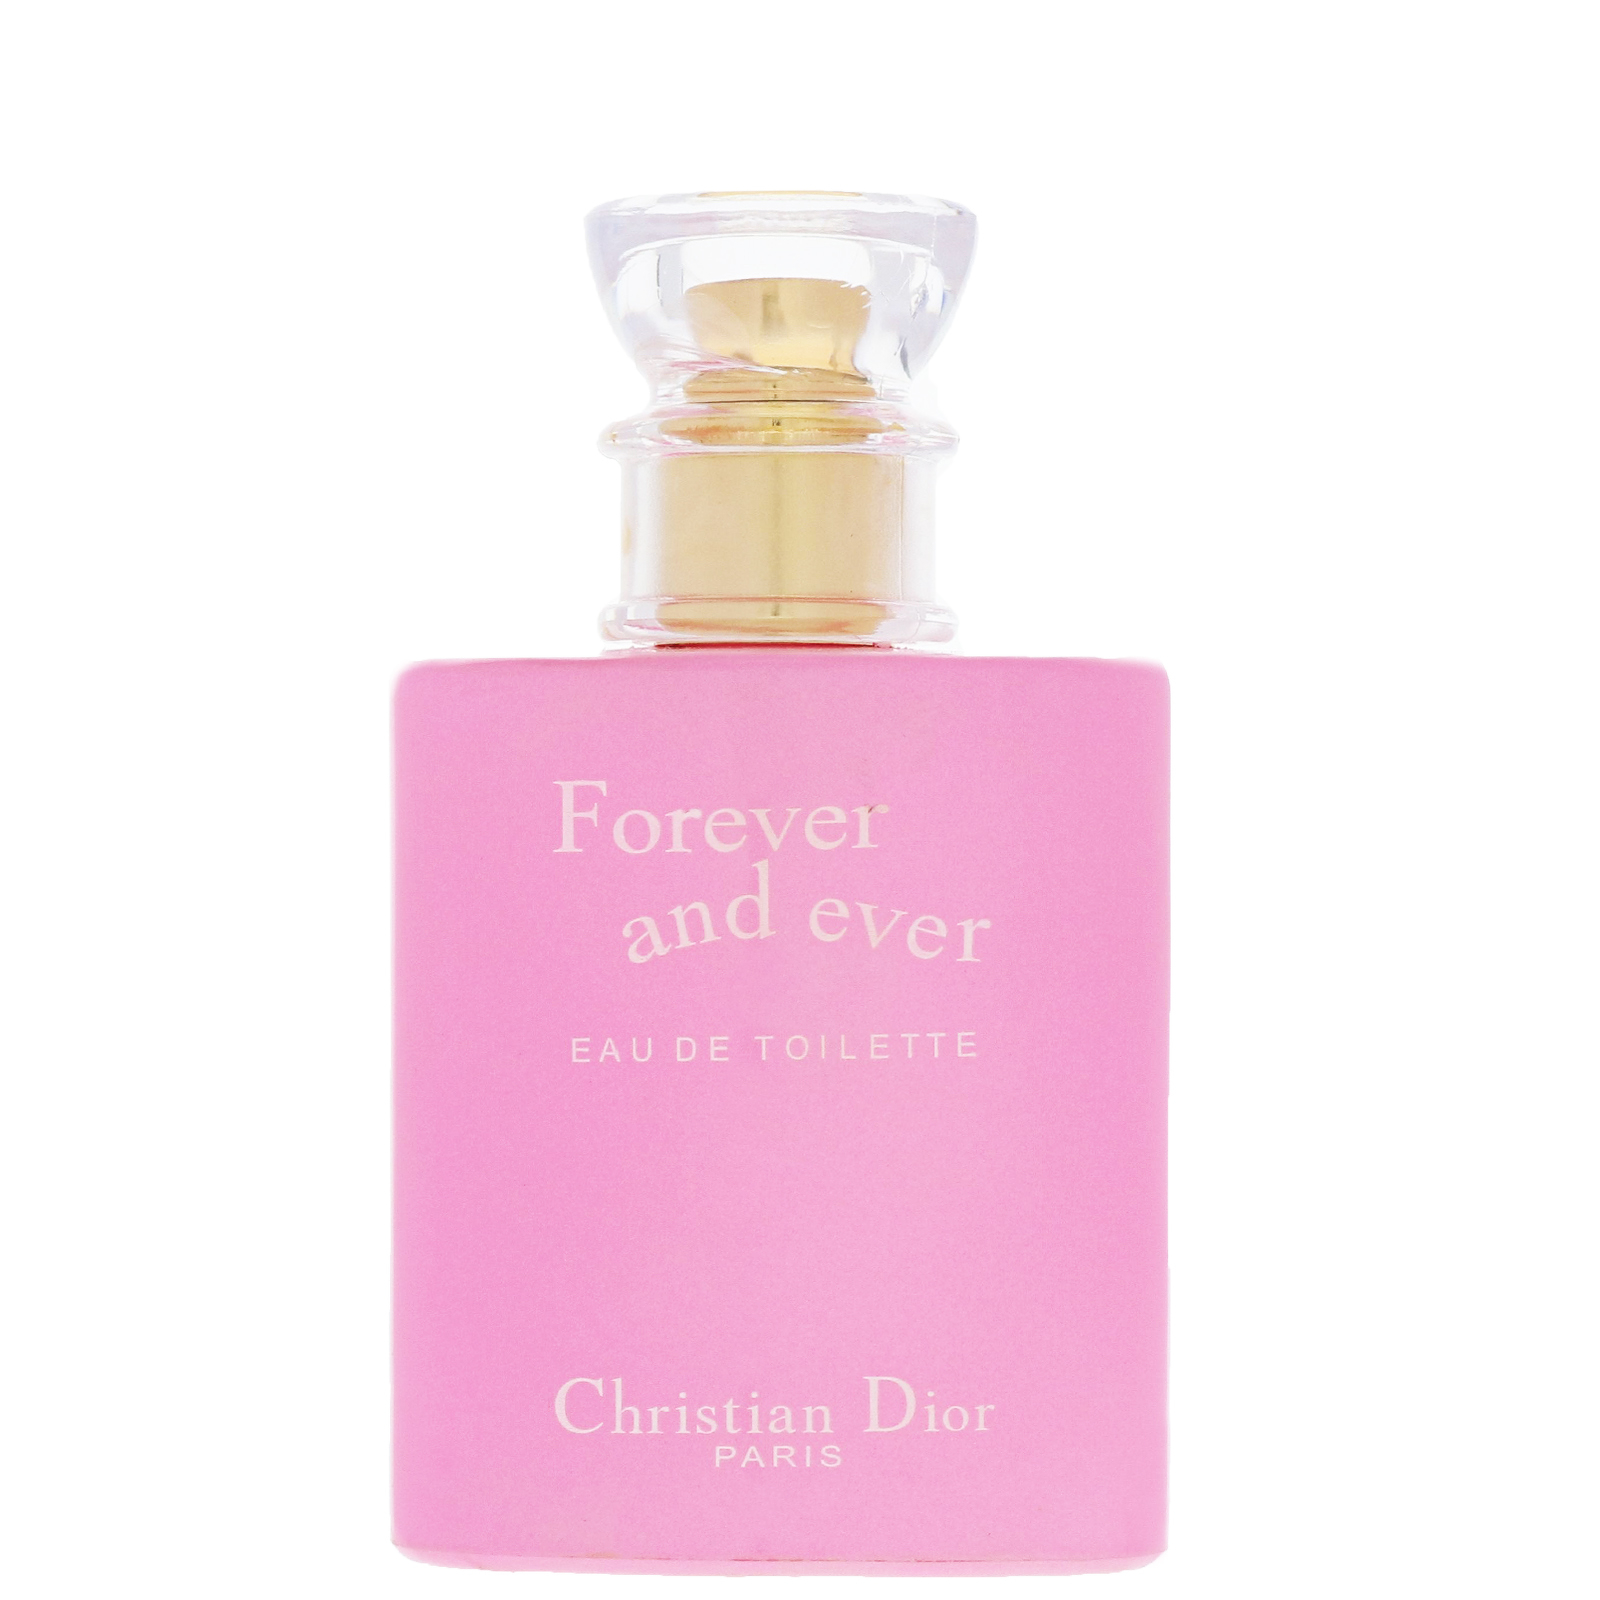 Dior Forever and Ever Limited Edition Eau de Toilette Spray 50ml